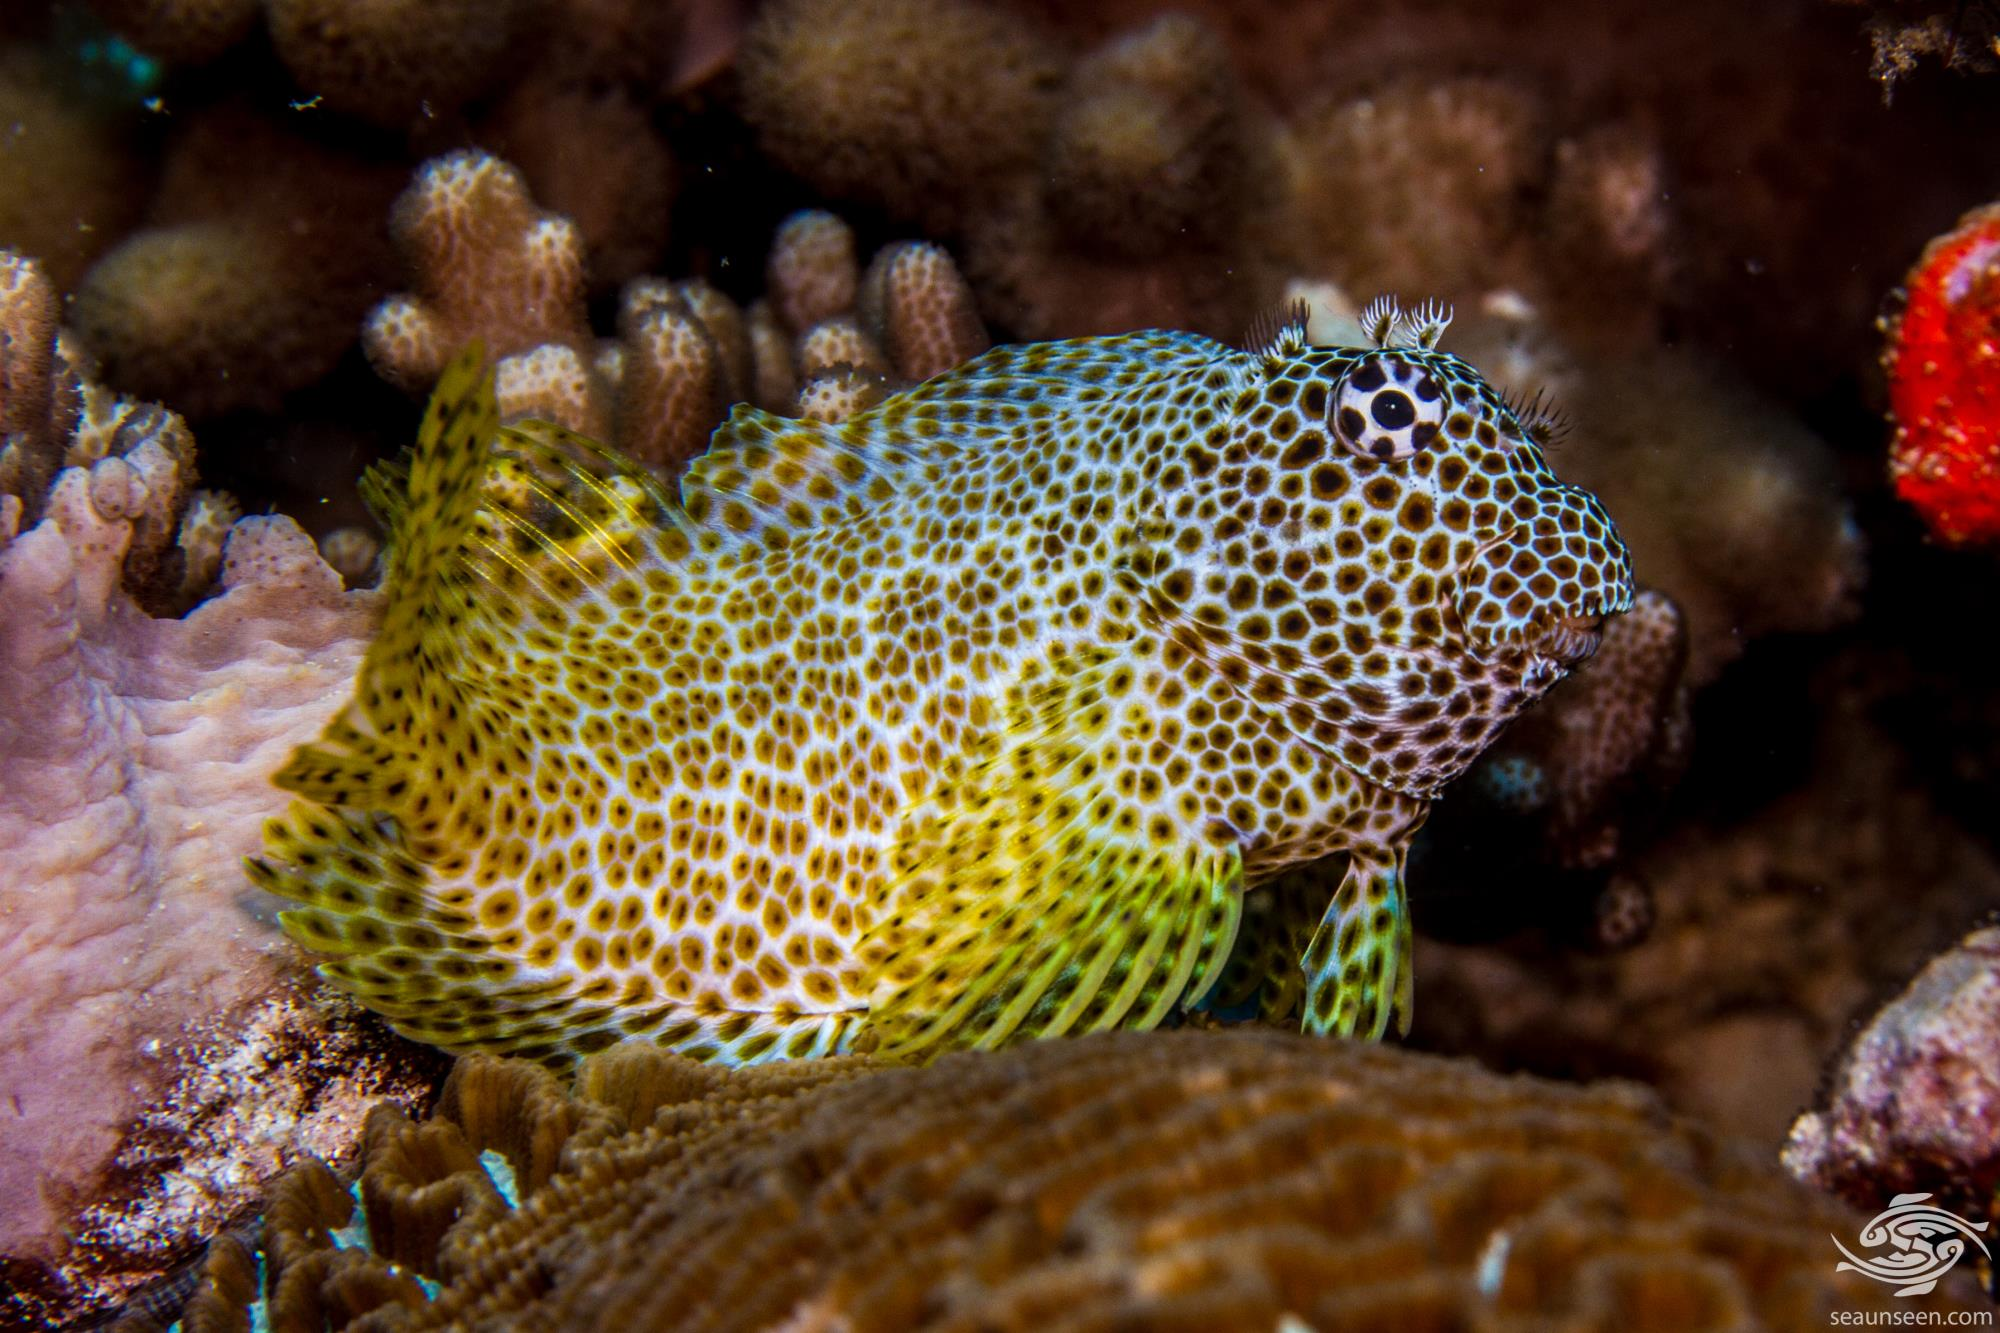 leopard blenny (Exallias brevis) also known as the pink-spotted blenny, shortbodied blenny and honeycomb blenny